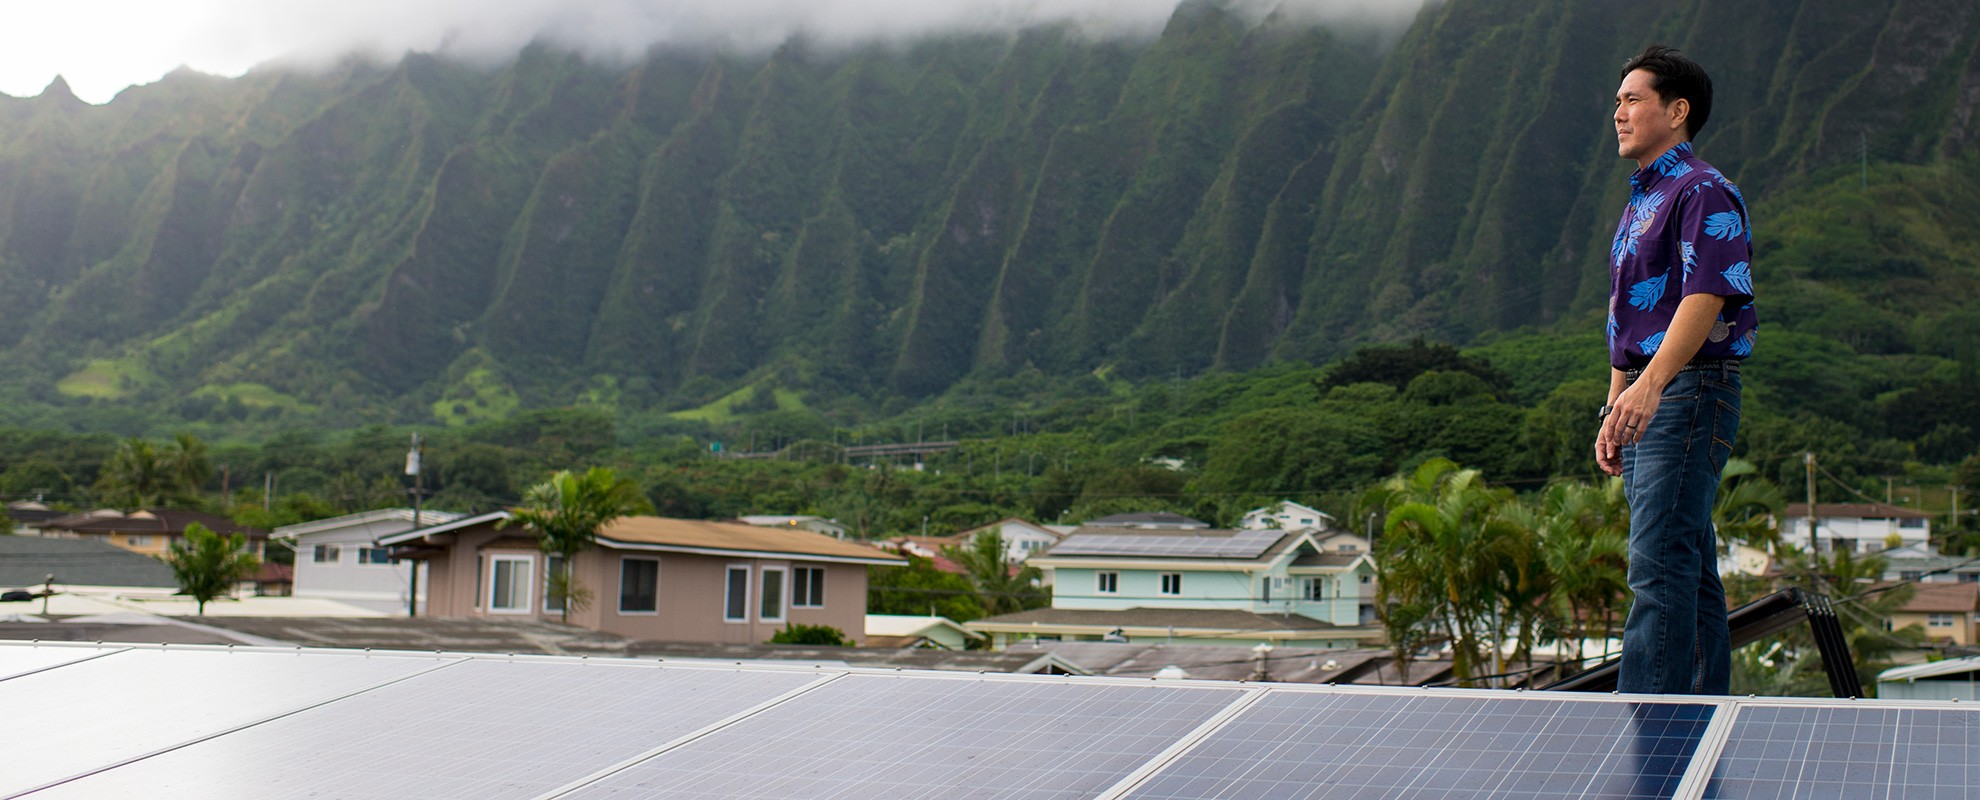 Attorney Isaac Moriwake stands next to solar panels installed on his rooftop in Hawai'i.